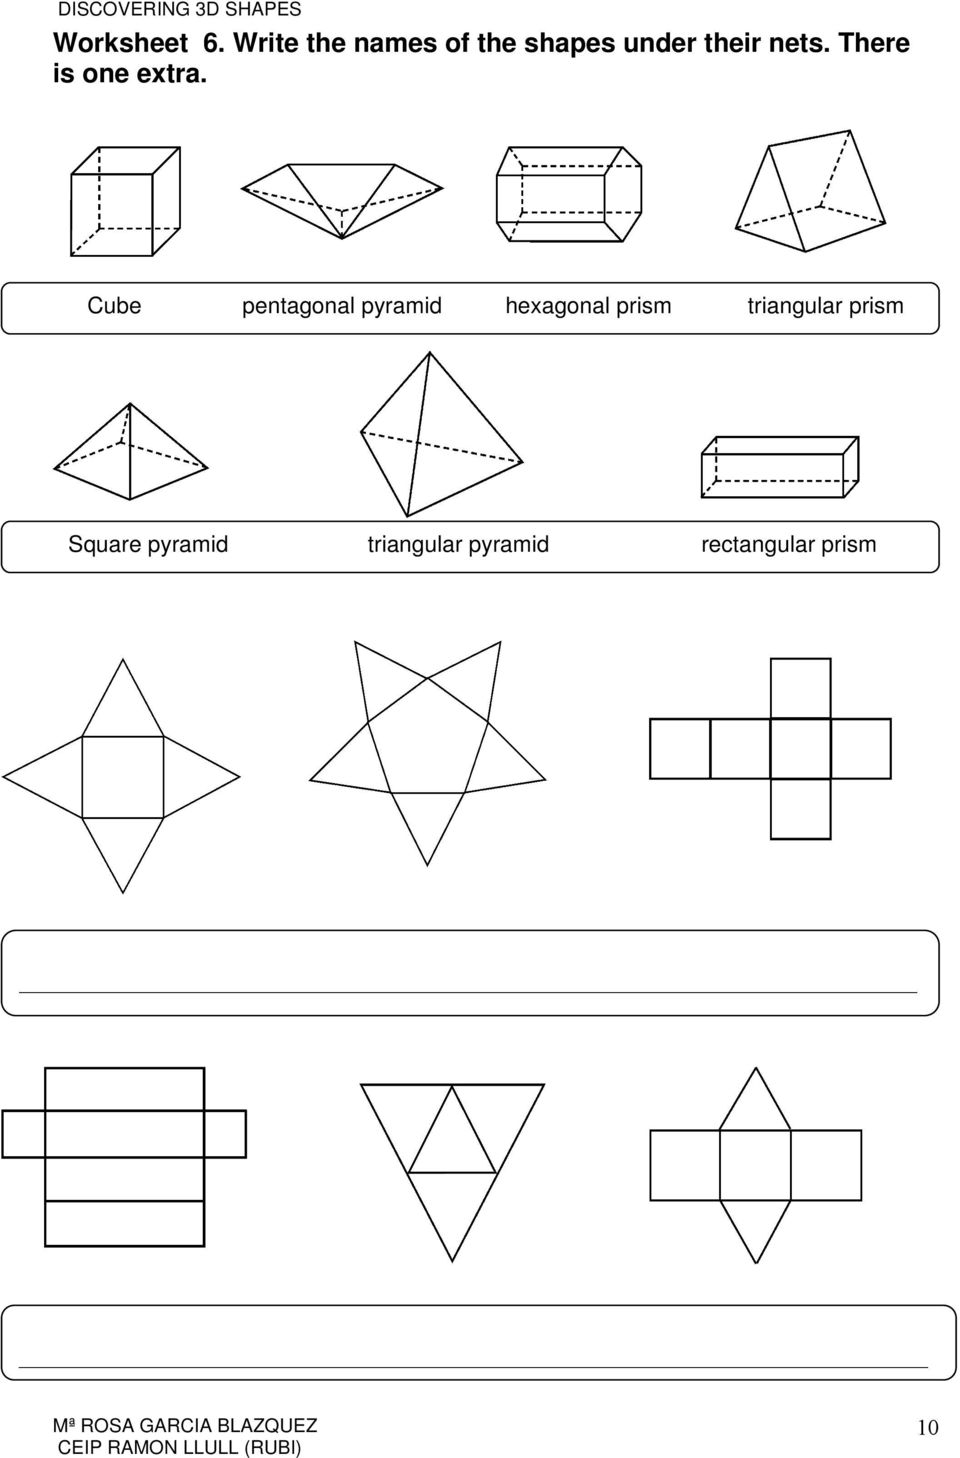 Discovering 3d Shapes Pdf